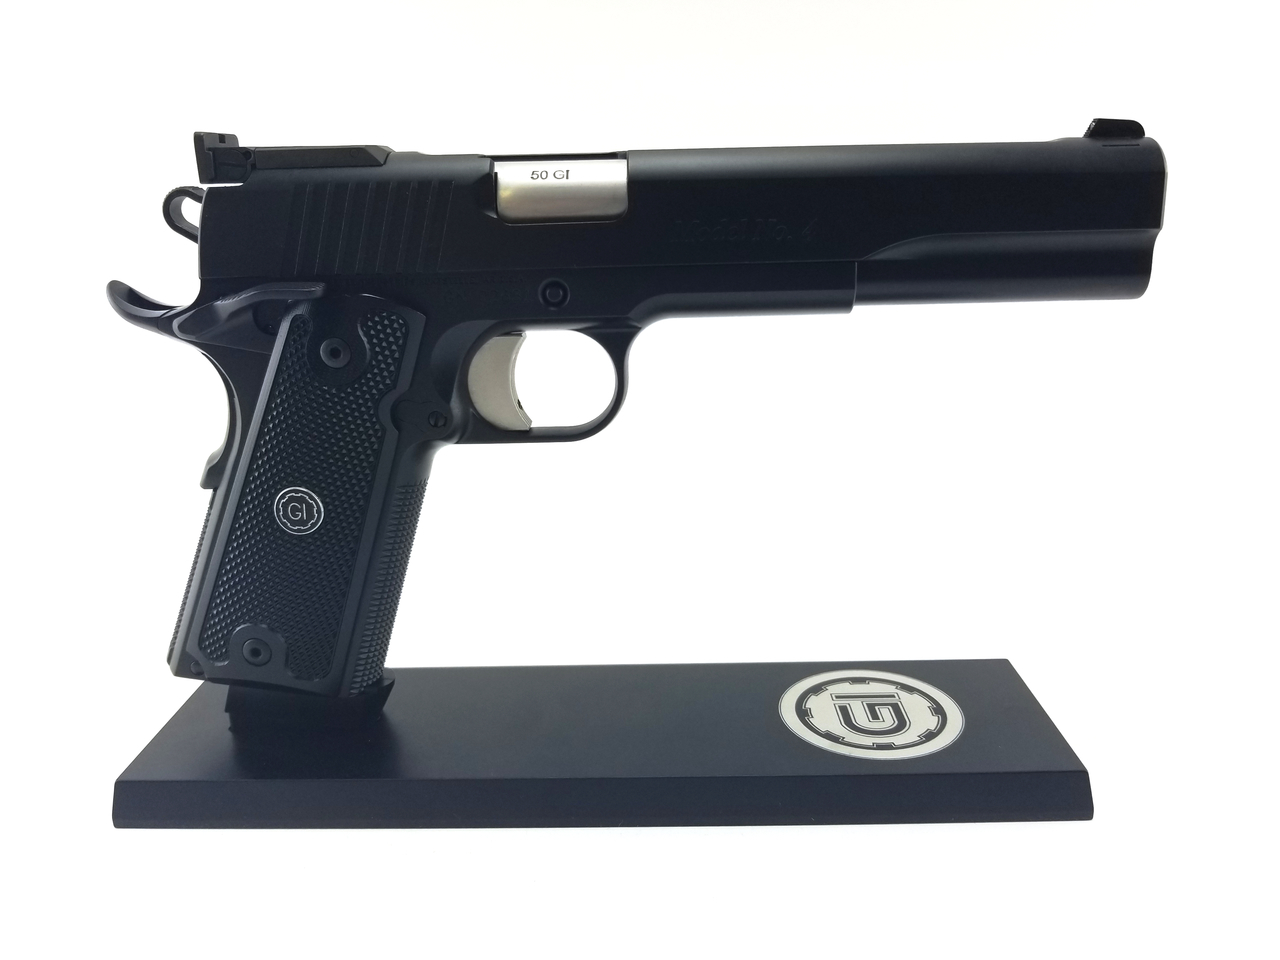 Guncrafter Industries Model 4 pistol